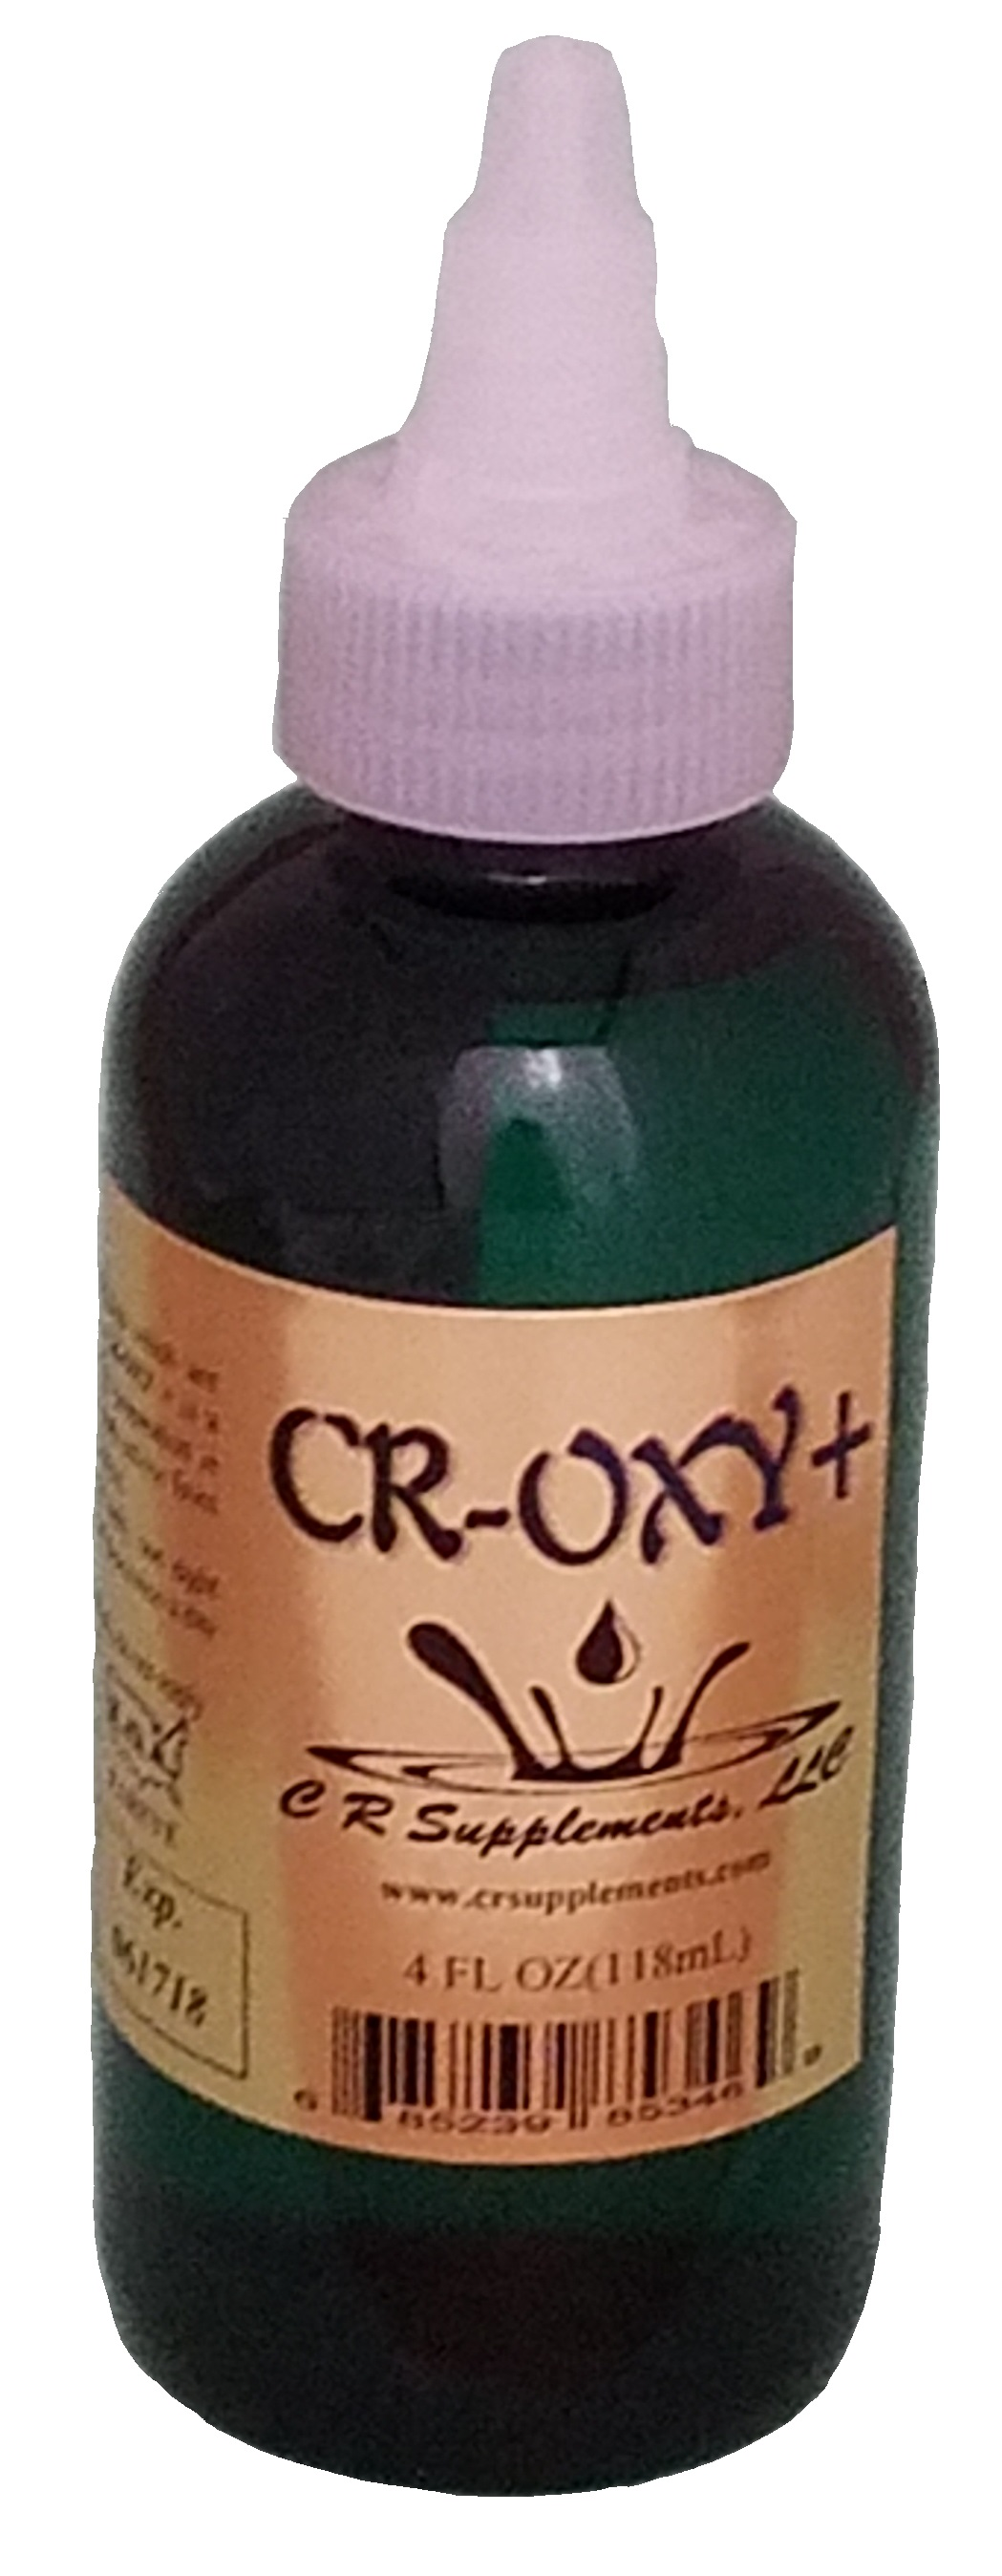 CR-OXY+ Dietary Supplement, CR-OXY+ , WaterOz CR-OXY+ Replacement, Liquid dietary supplement, Kosher of America approved, KOA approved, Pareve, vegan application, elemental mineral, flexible liquid mineral, maximum absorption